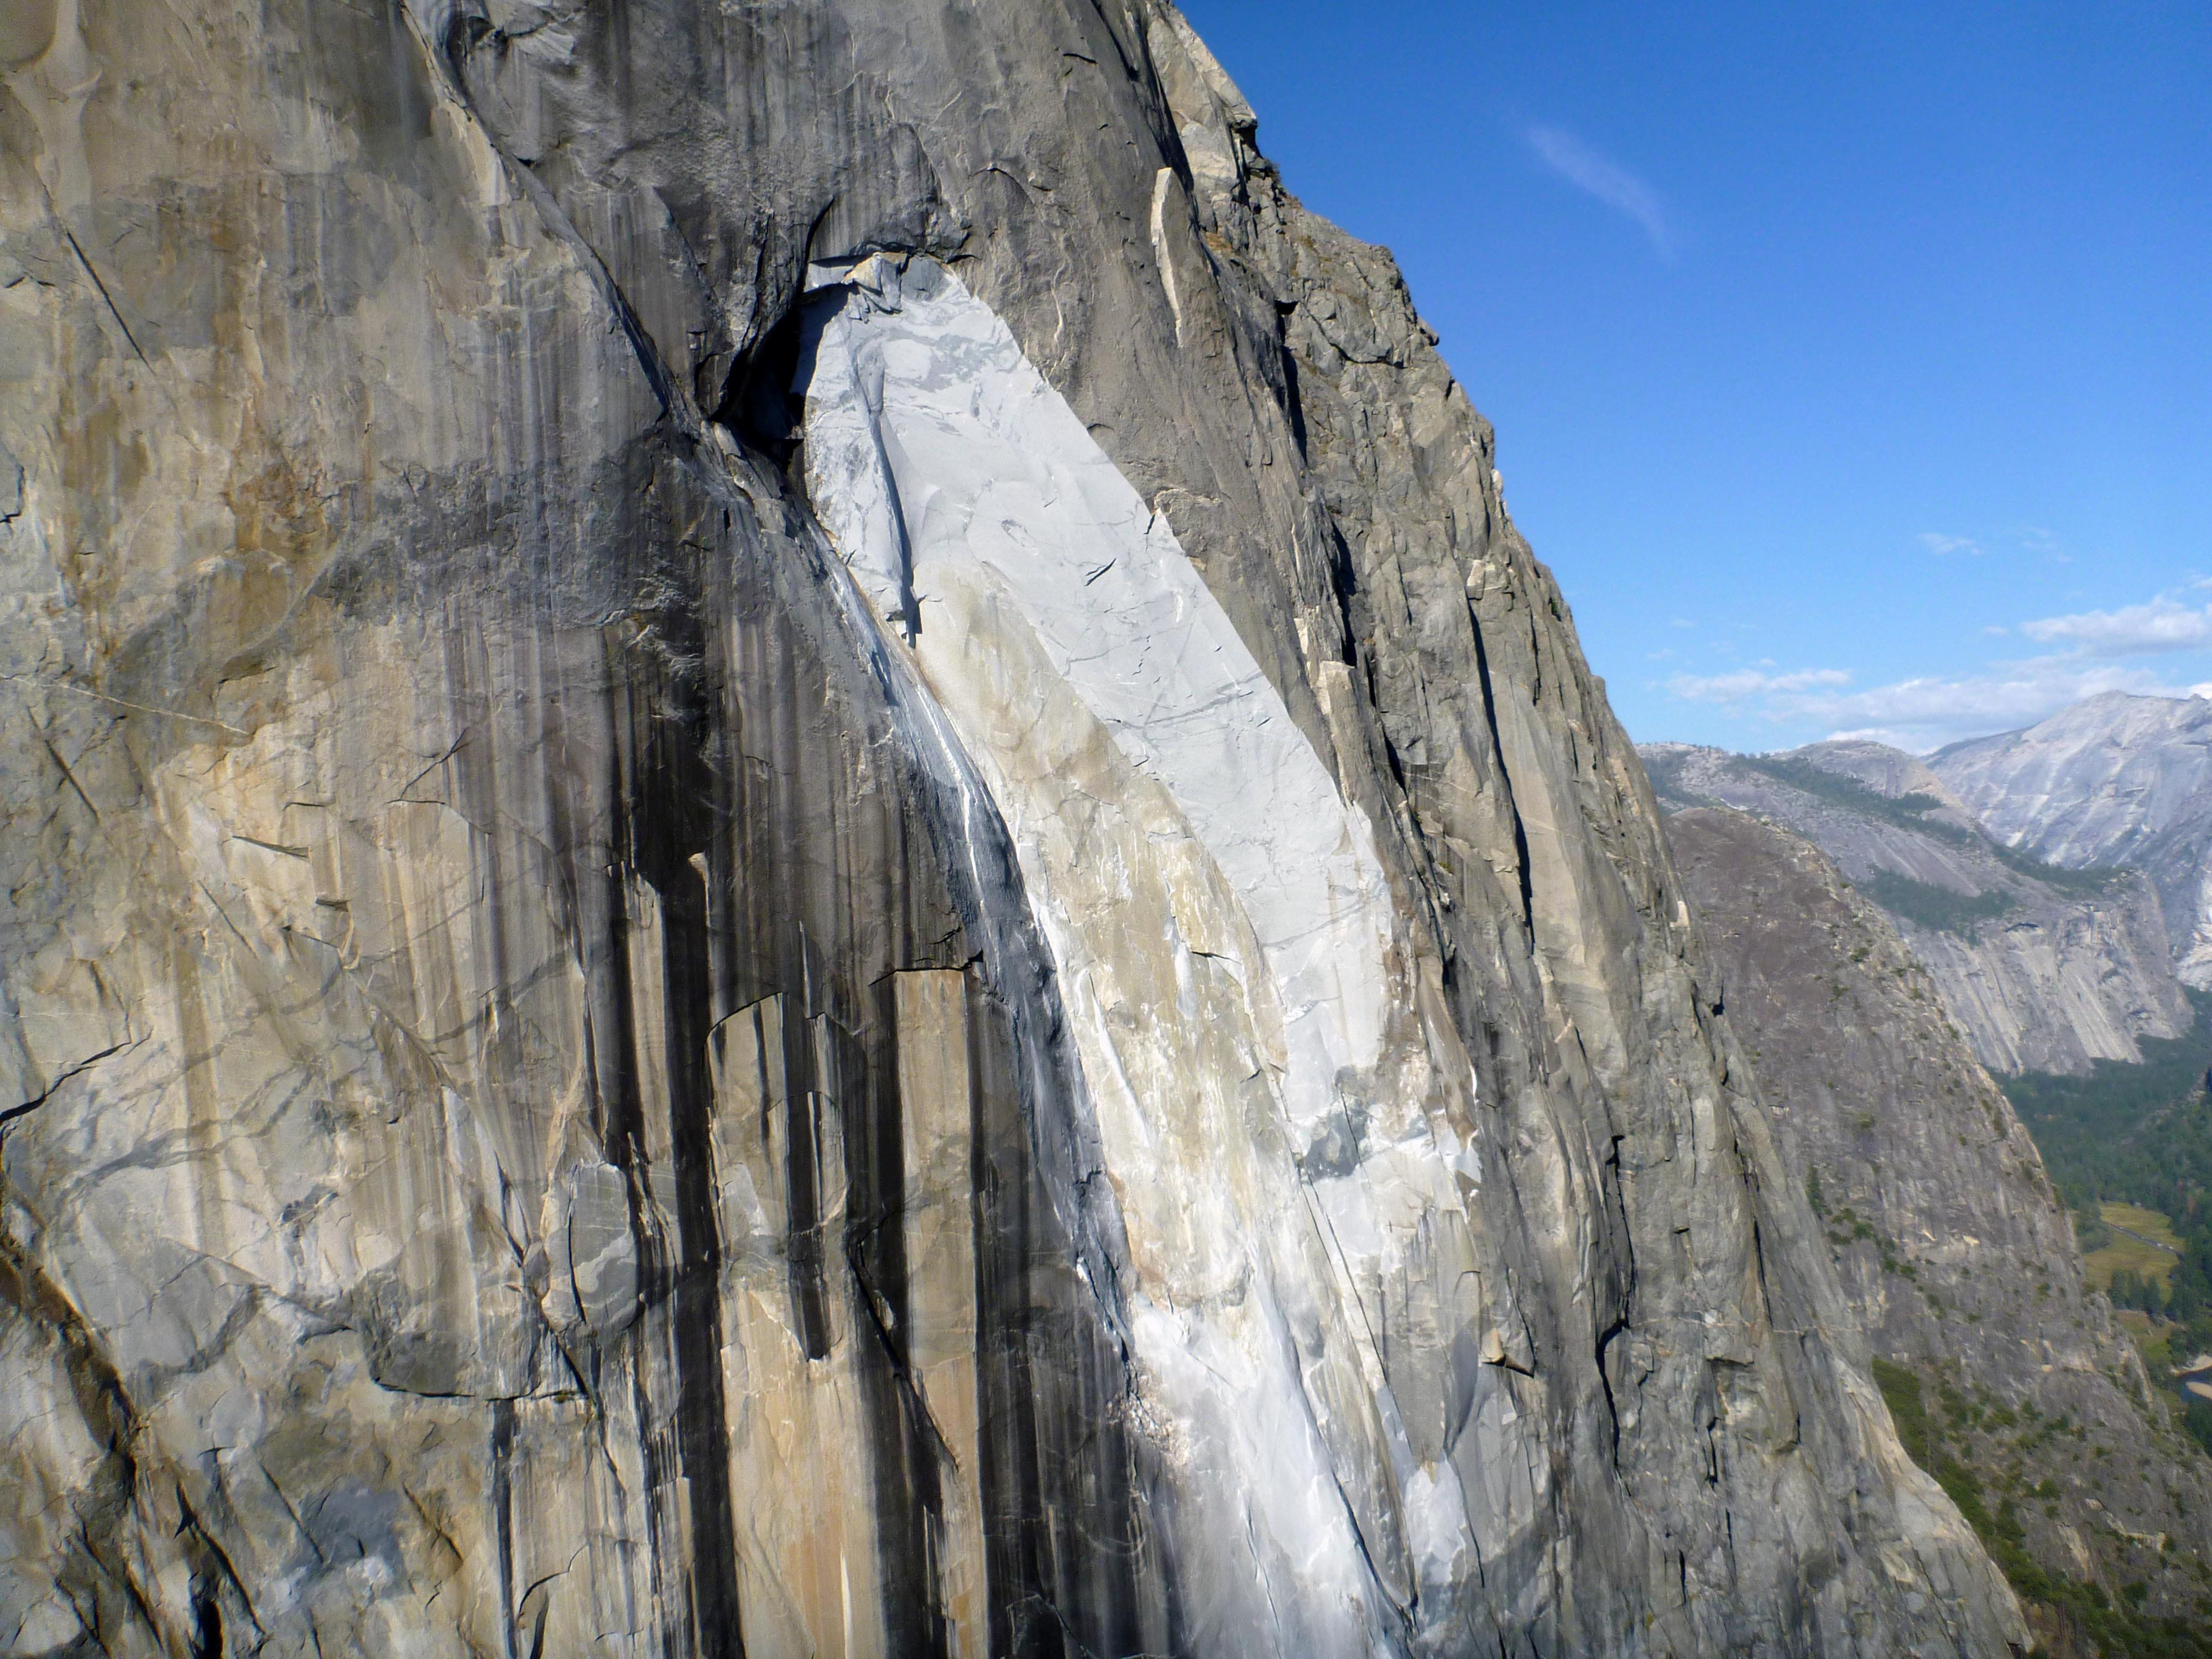 The southeast face of El Capitan granite monolith in Yosemite National Park is seen after another rockfall injured a second person a day after a British climber was killed by a rockfall at Yosemite National Park in California, U.S, September 28, 2017.    Courtesy National Park Service/Handout via REUTERS  ATTENTION EDITORS - THIS IMAGE HAS BEEN SUPPLIED BY A THIRD PARTY